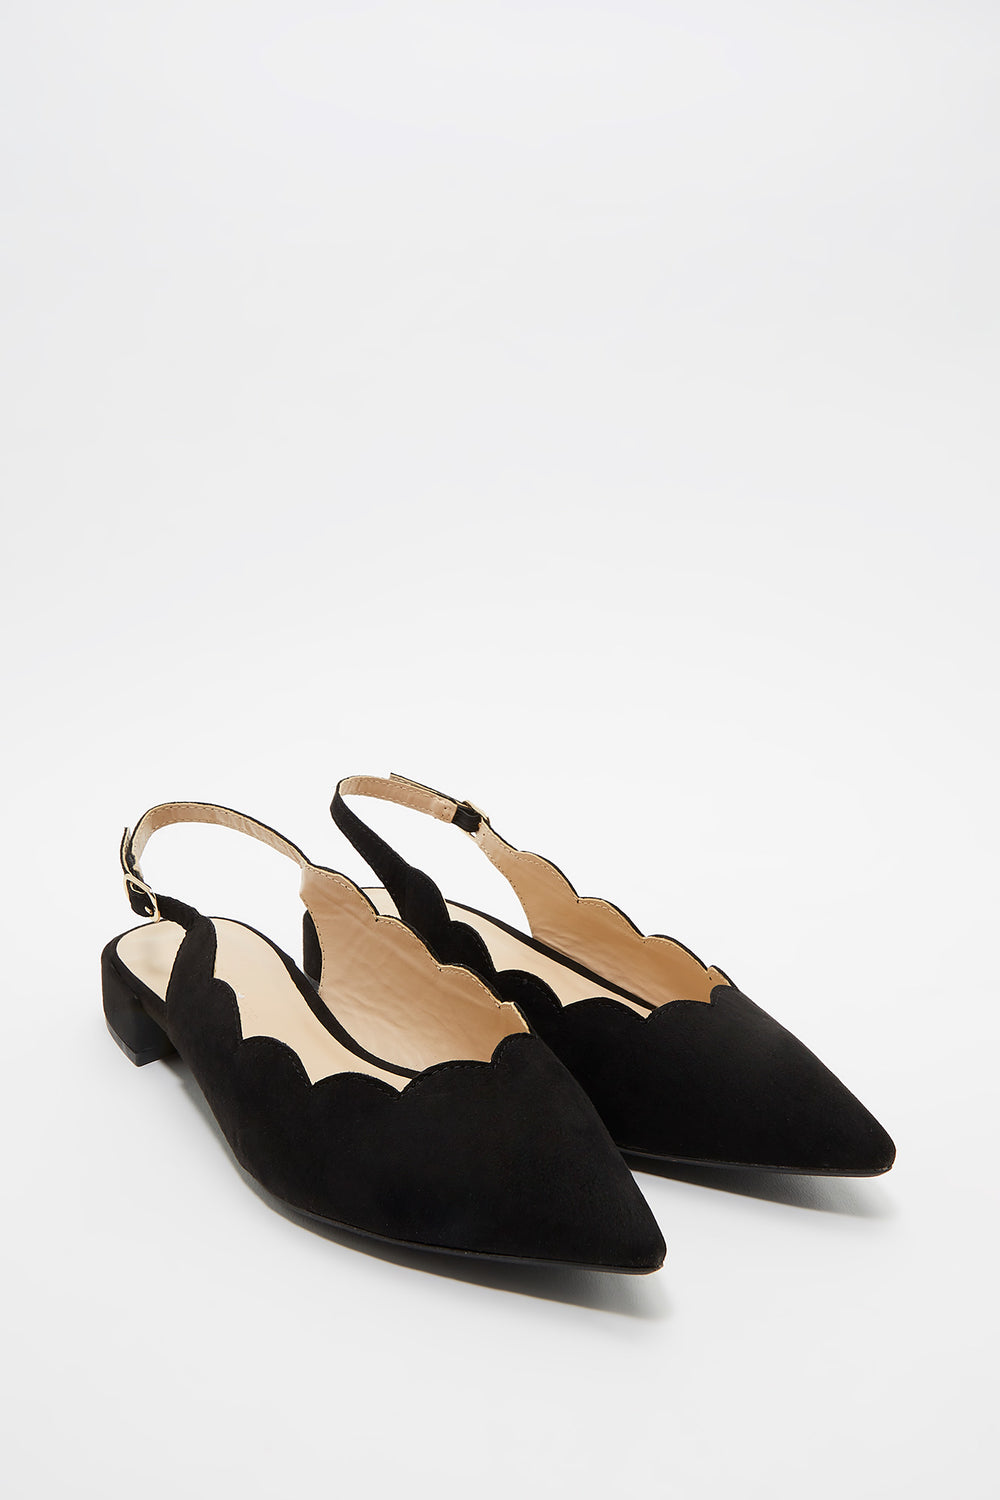 Scallop Slingback Block Kitten Heel Pump Black